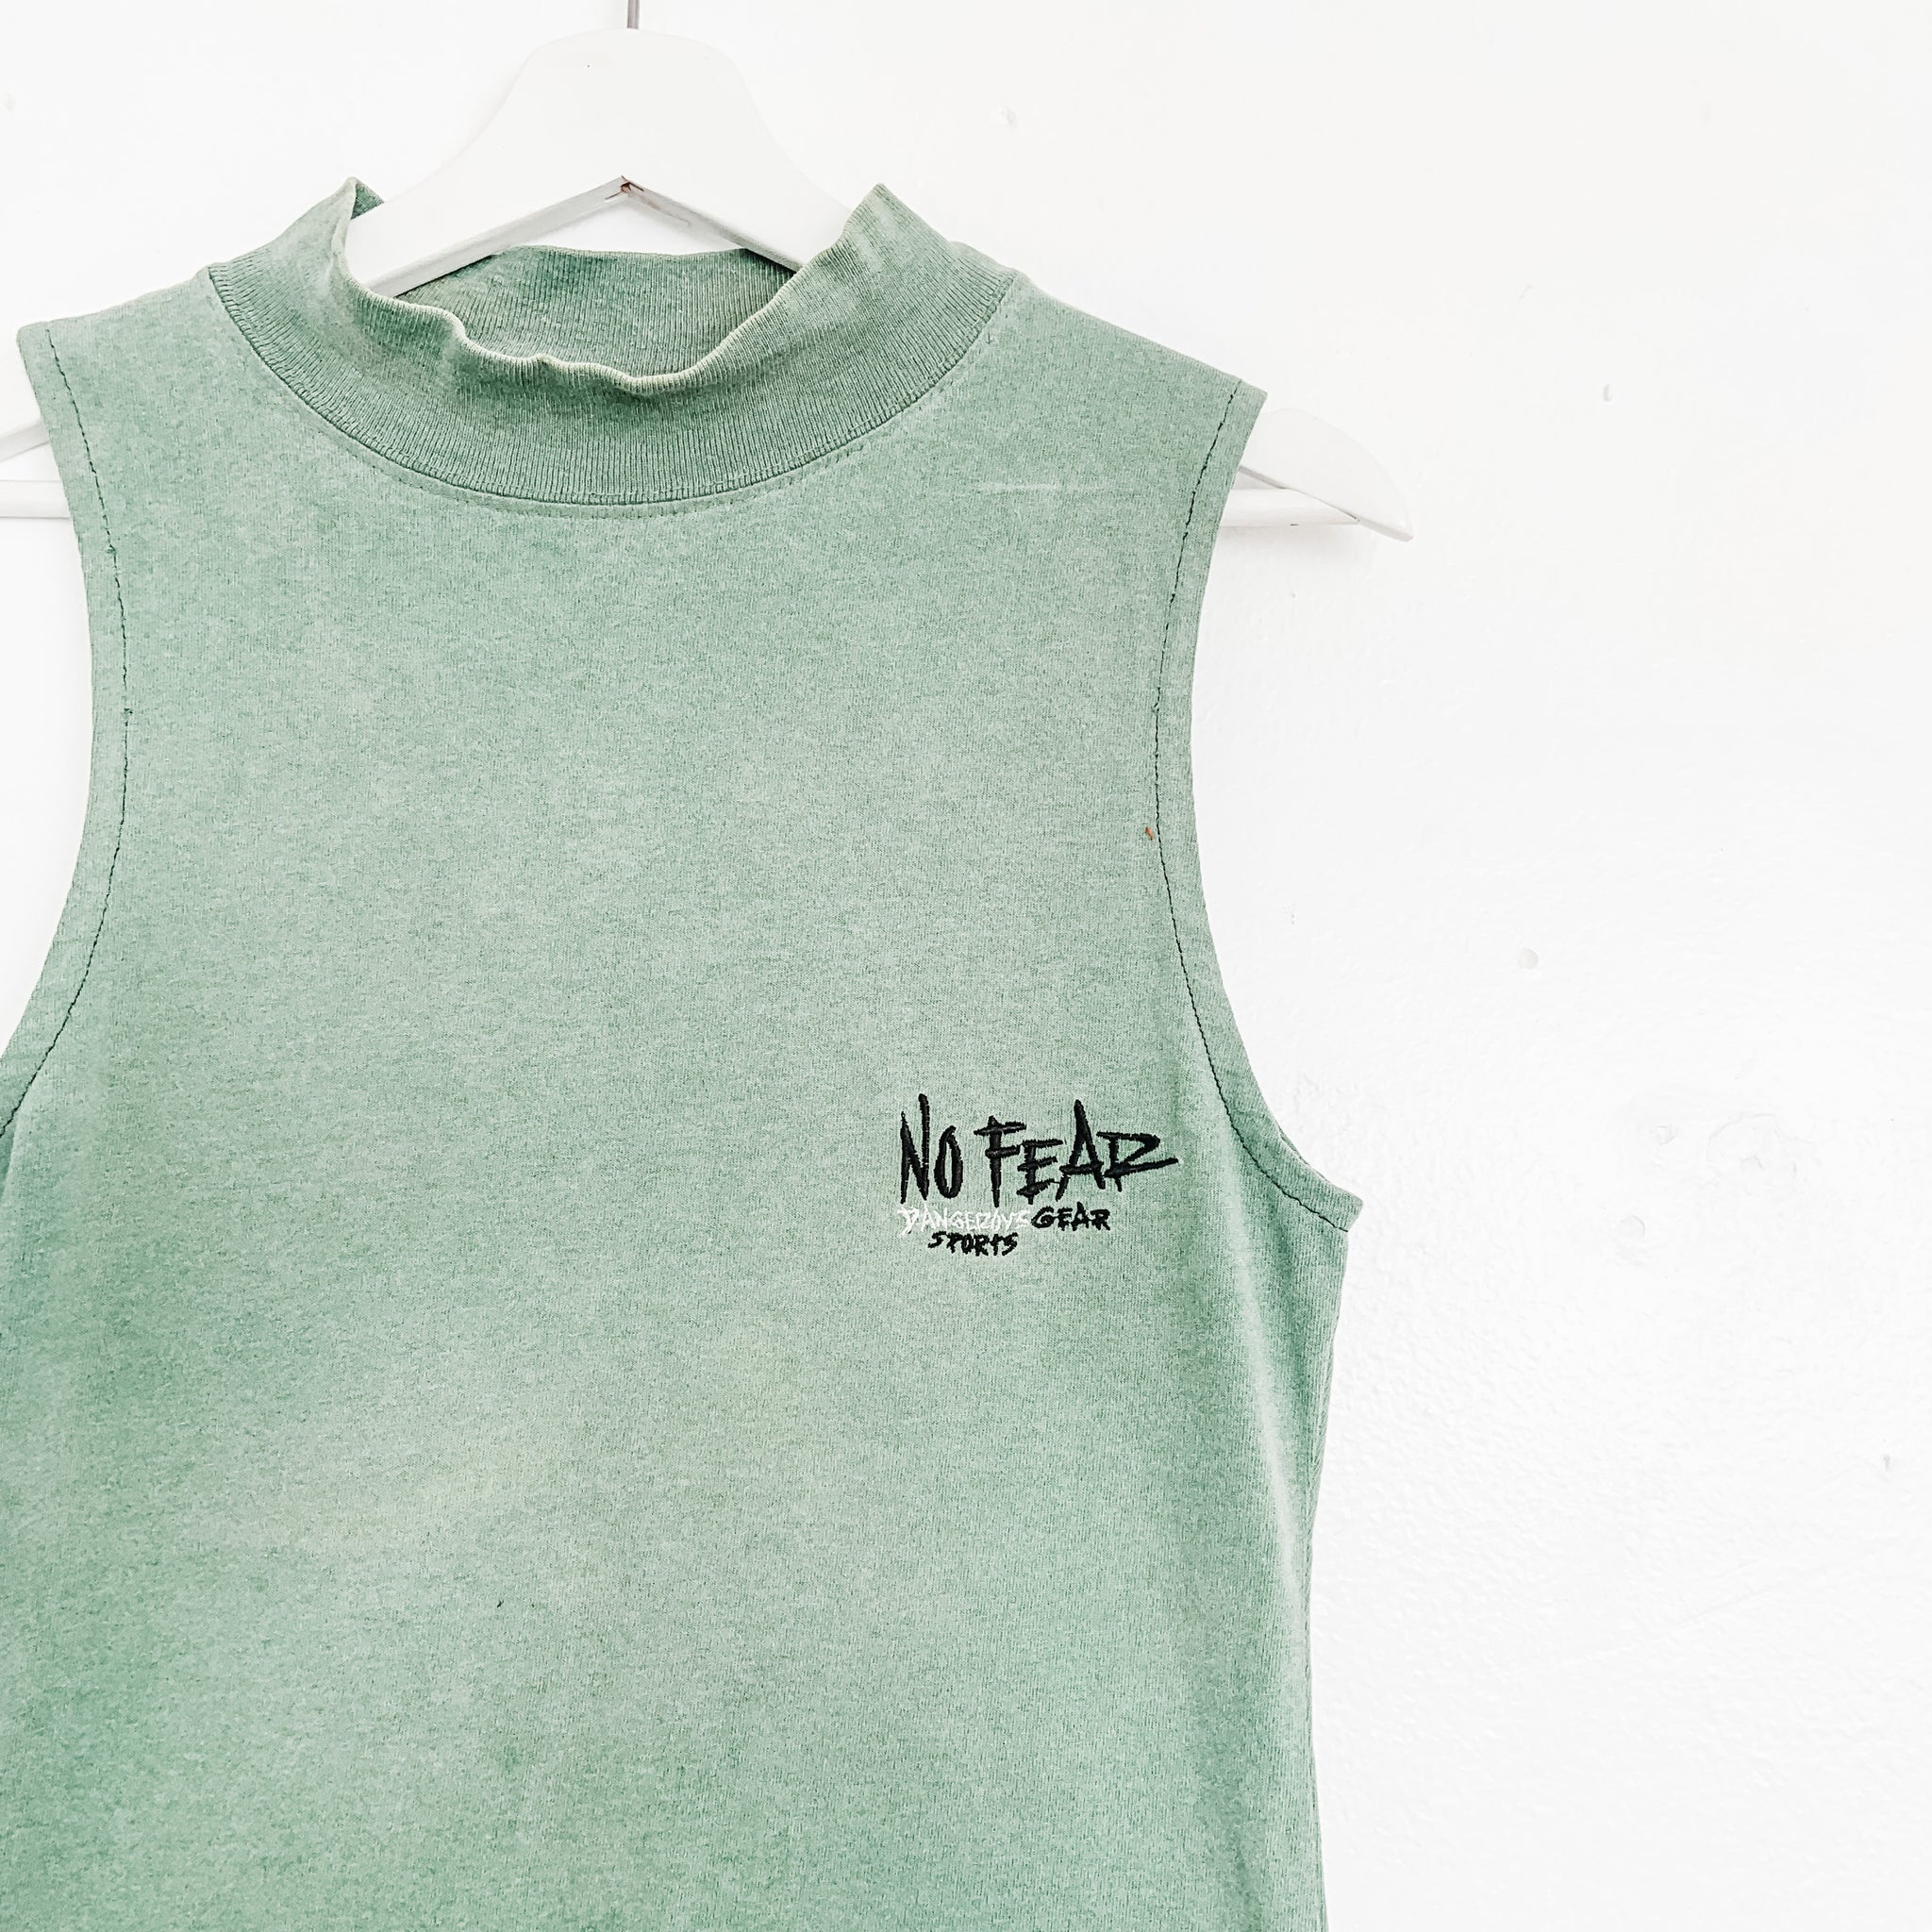 SALE Sustainable T-shirt tank Top